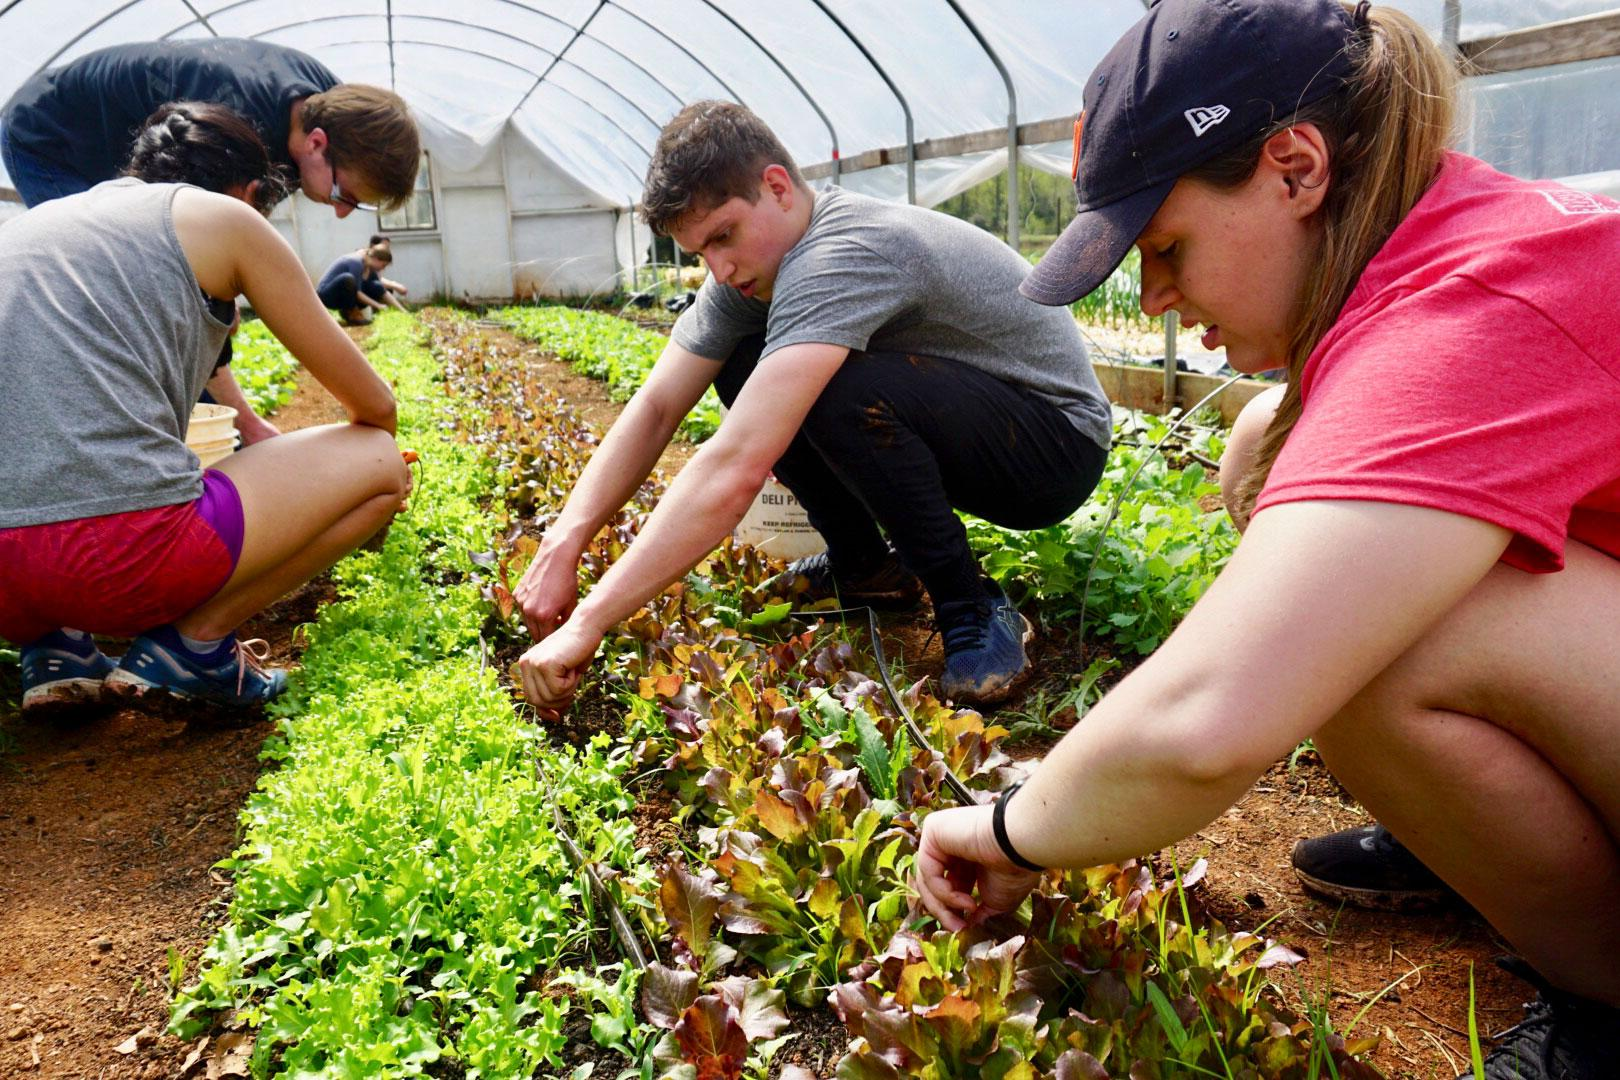 Students volunteered at Morven Farm, doing a variety of tasks in the educational garden that currently serves as a local food systems laboratory for students and faculty.